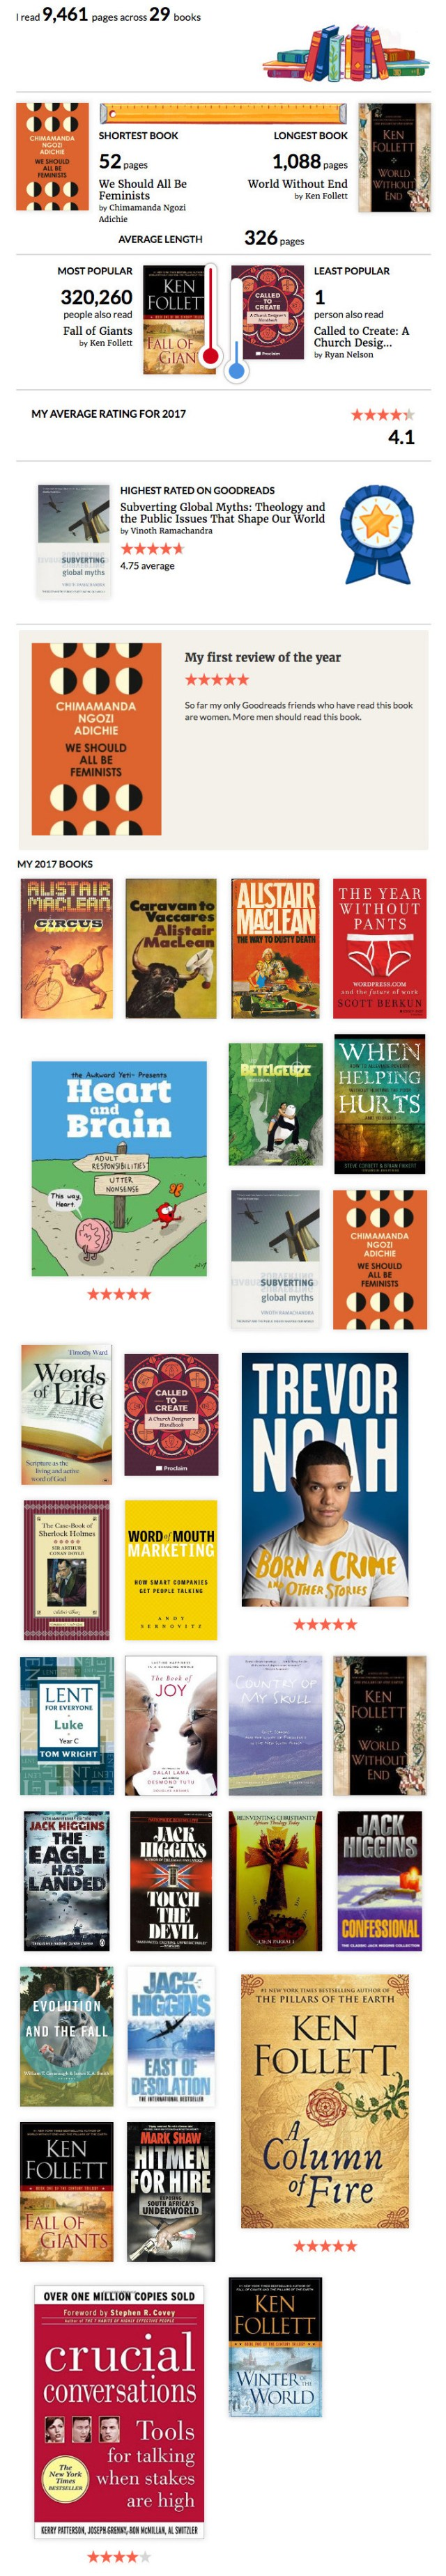 Screenshot-2018-1-13 Goodreads 2017 Year in Books.jpg